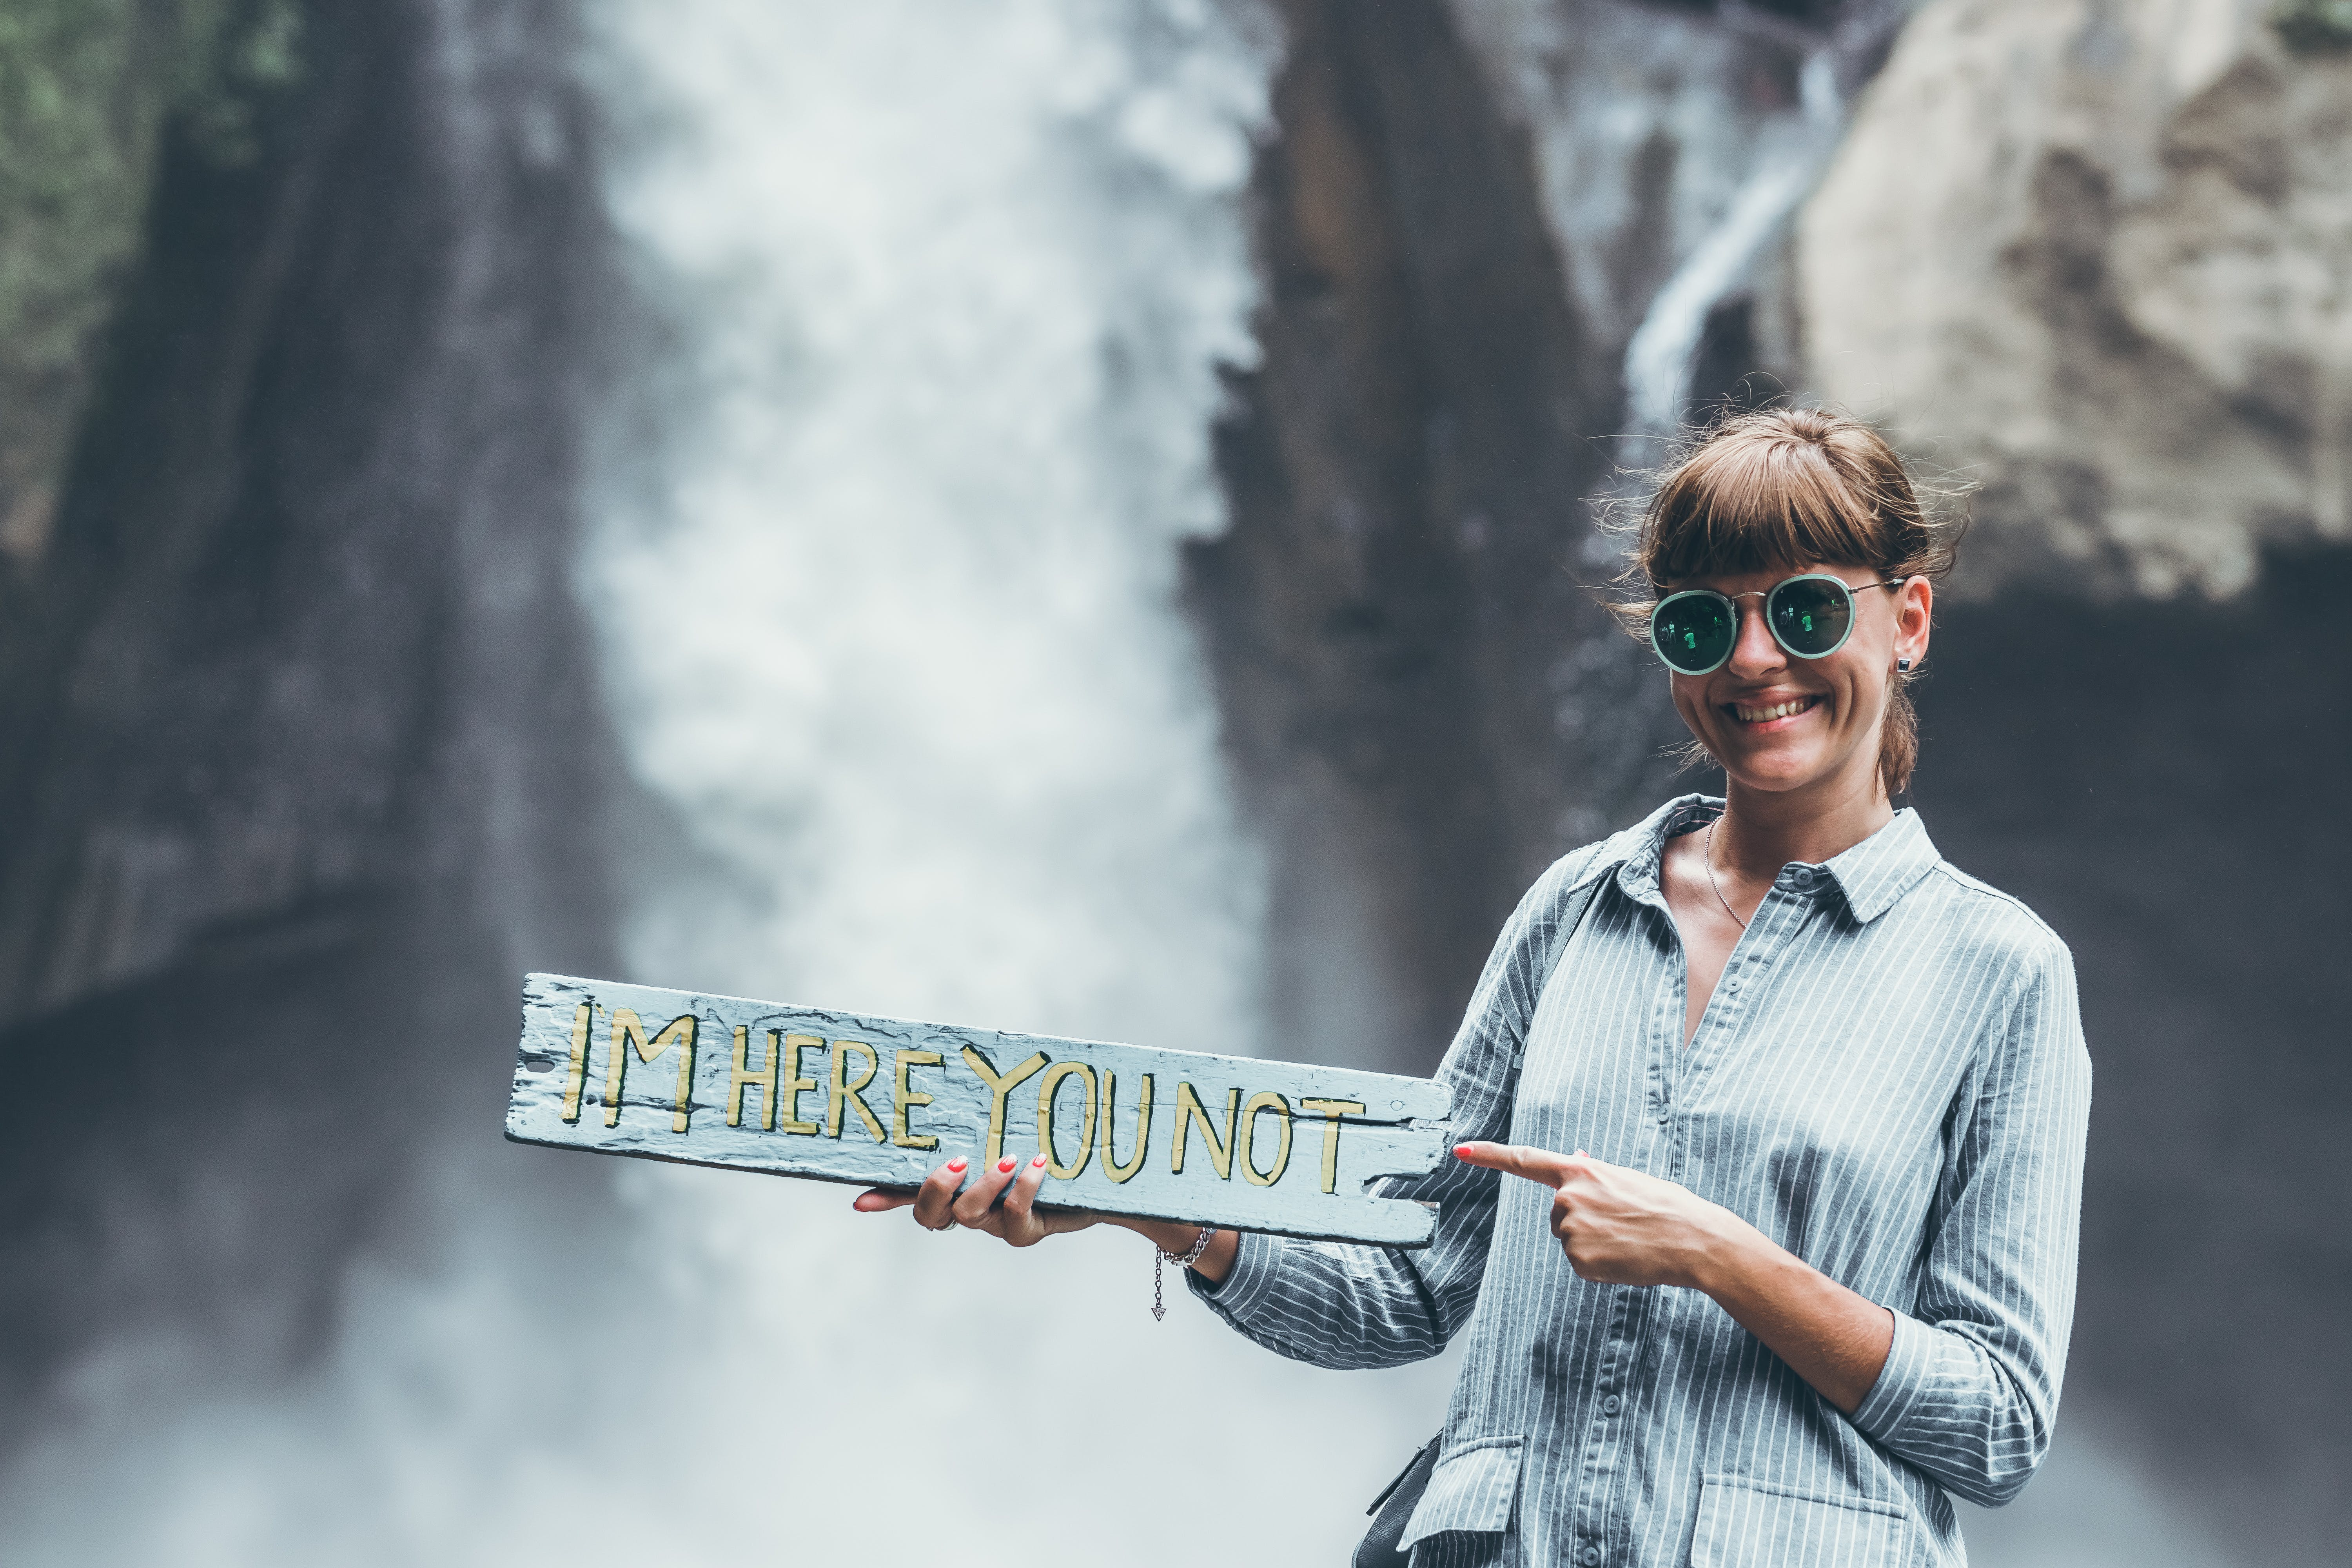 Woman Carrying Im Here You Not Plank on Front of Waterfalls